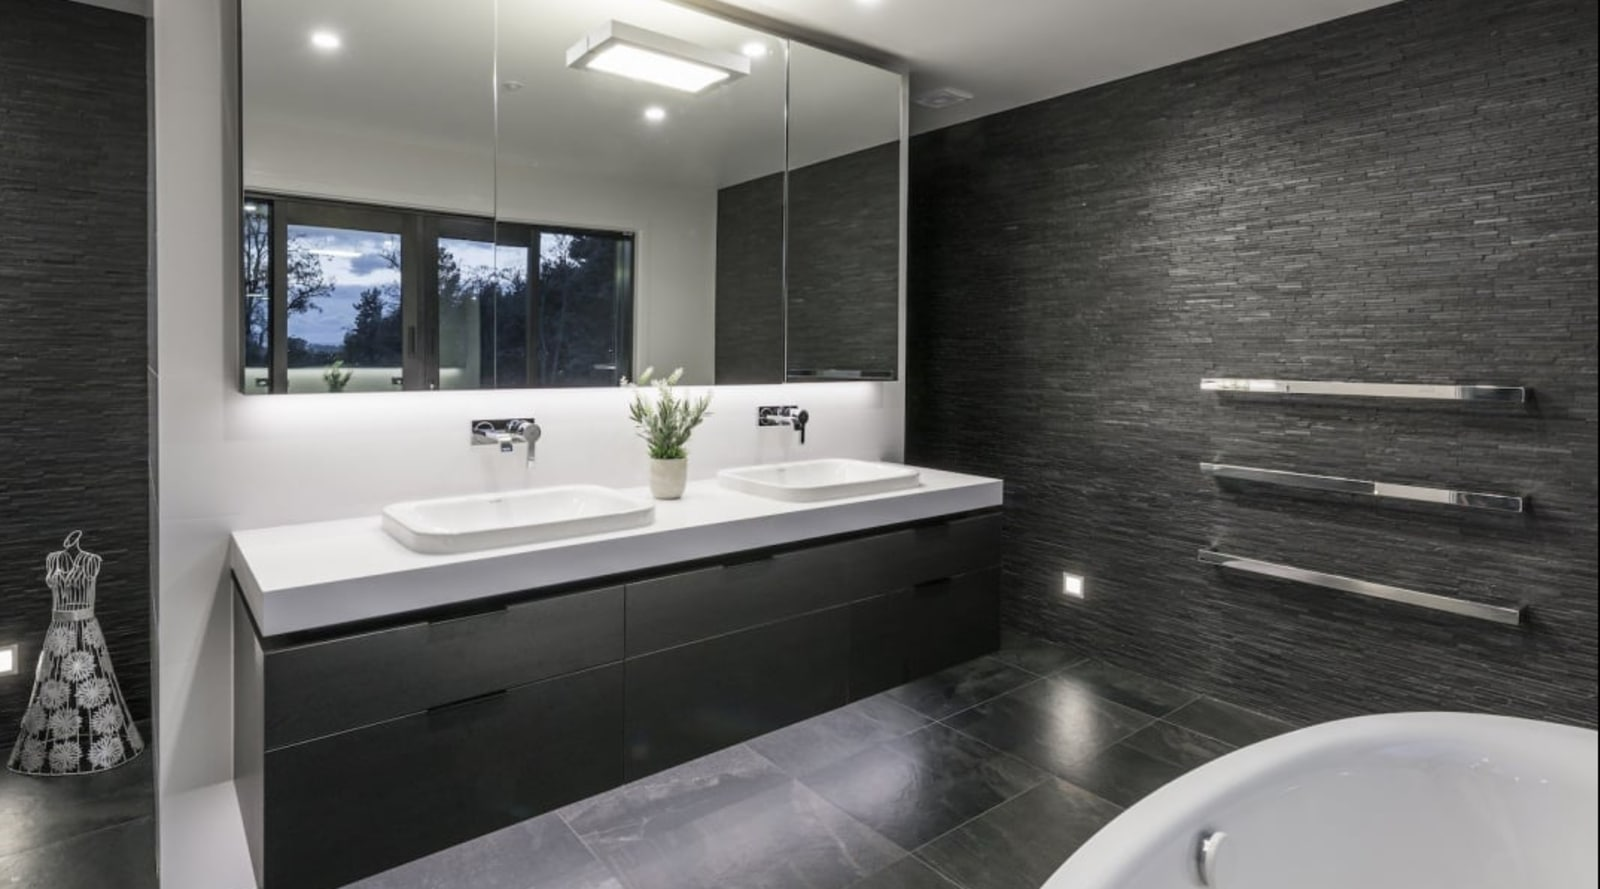 Basins & Taps | Trends